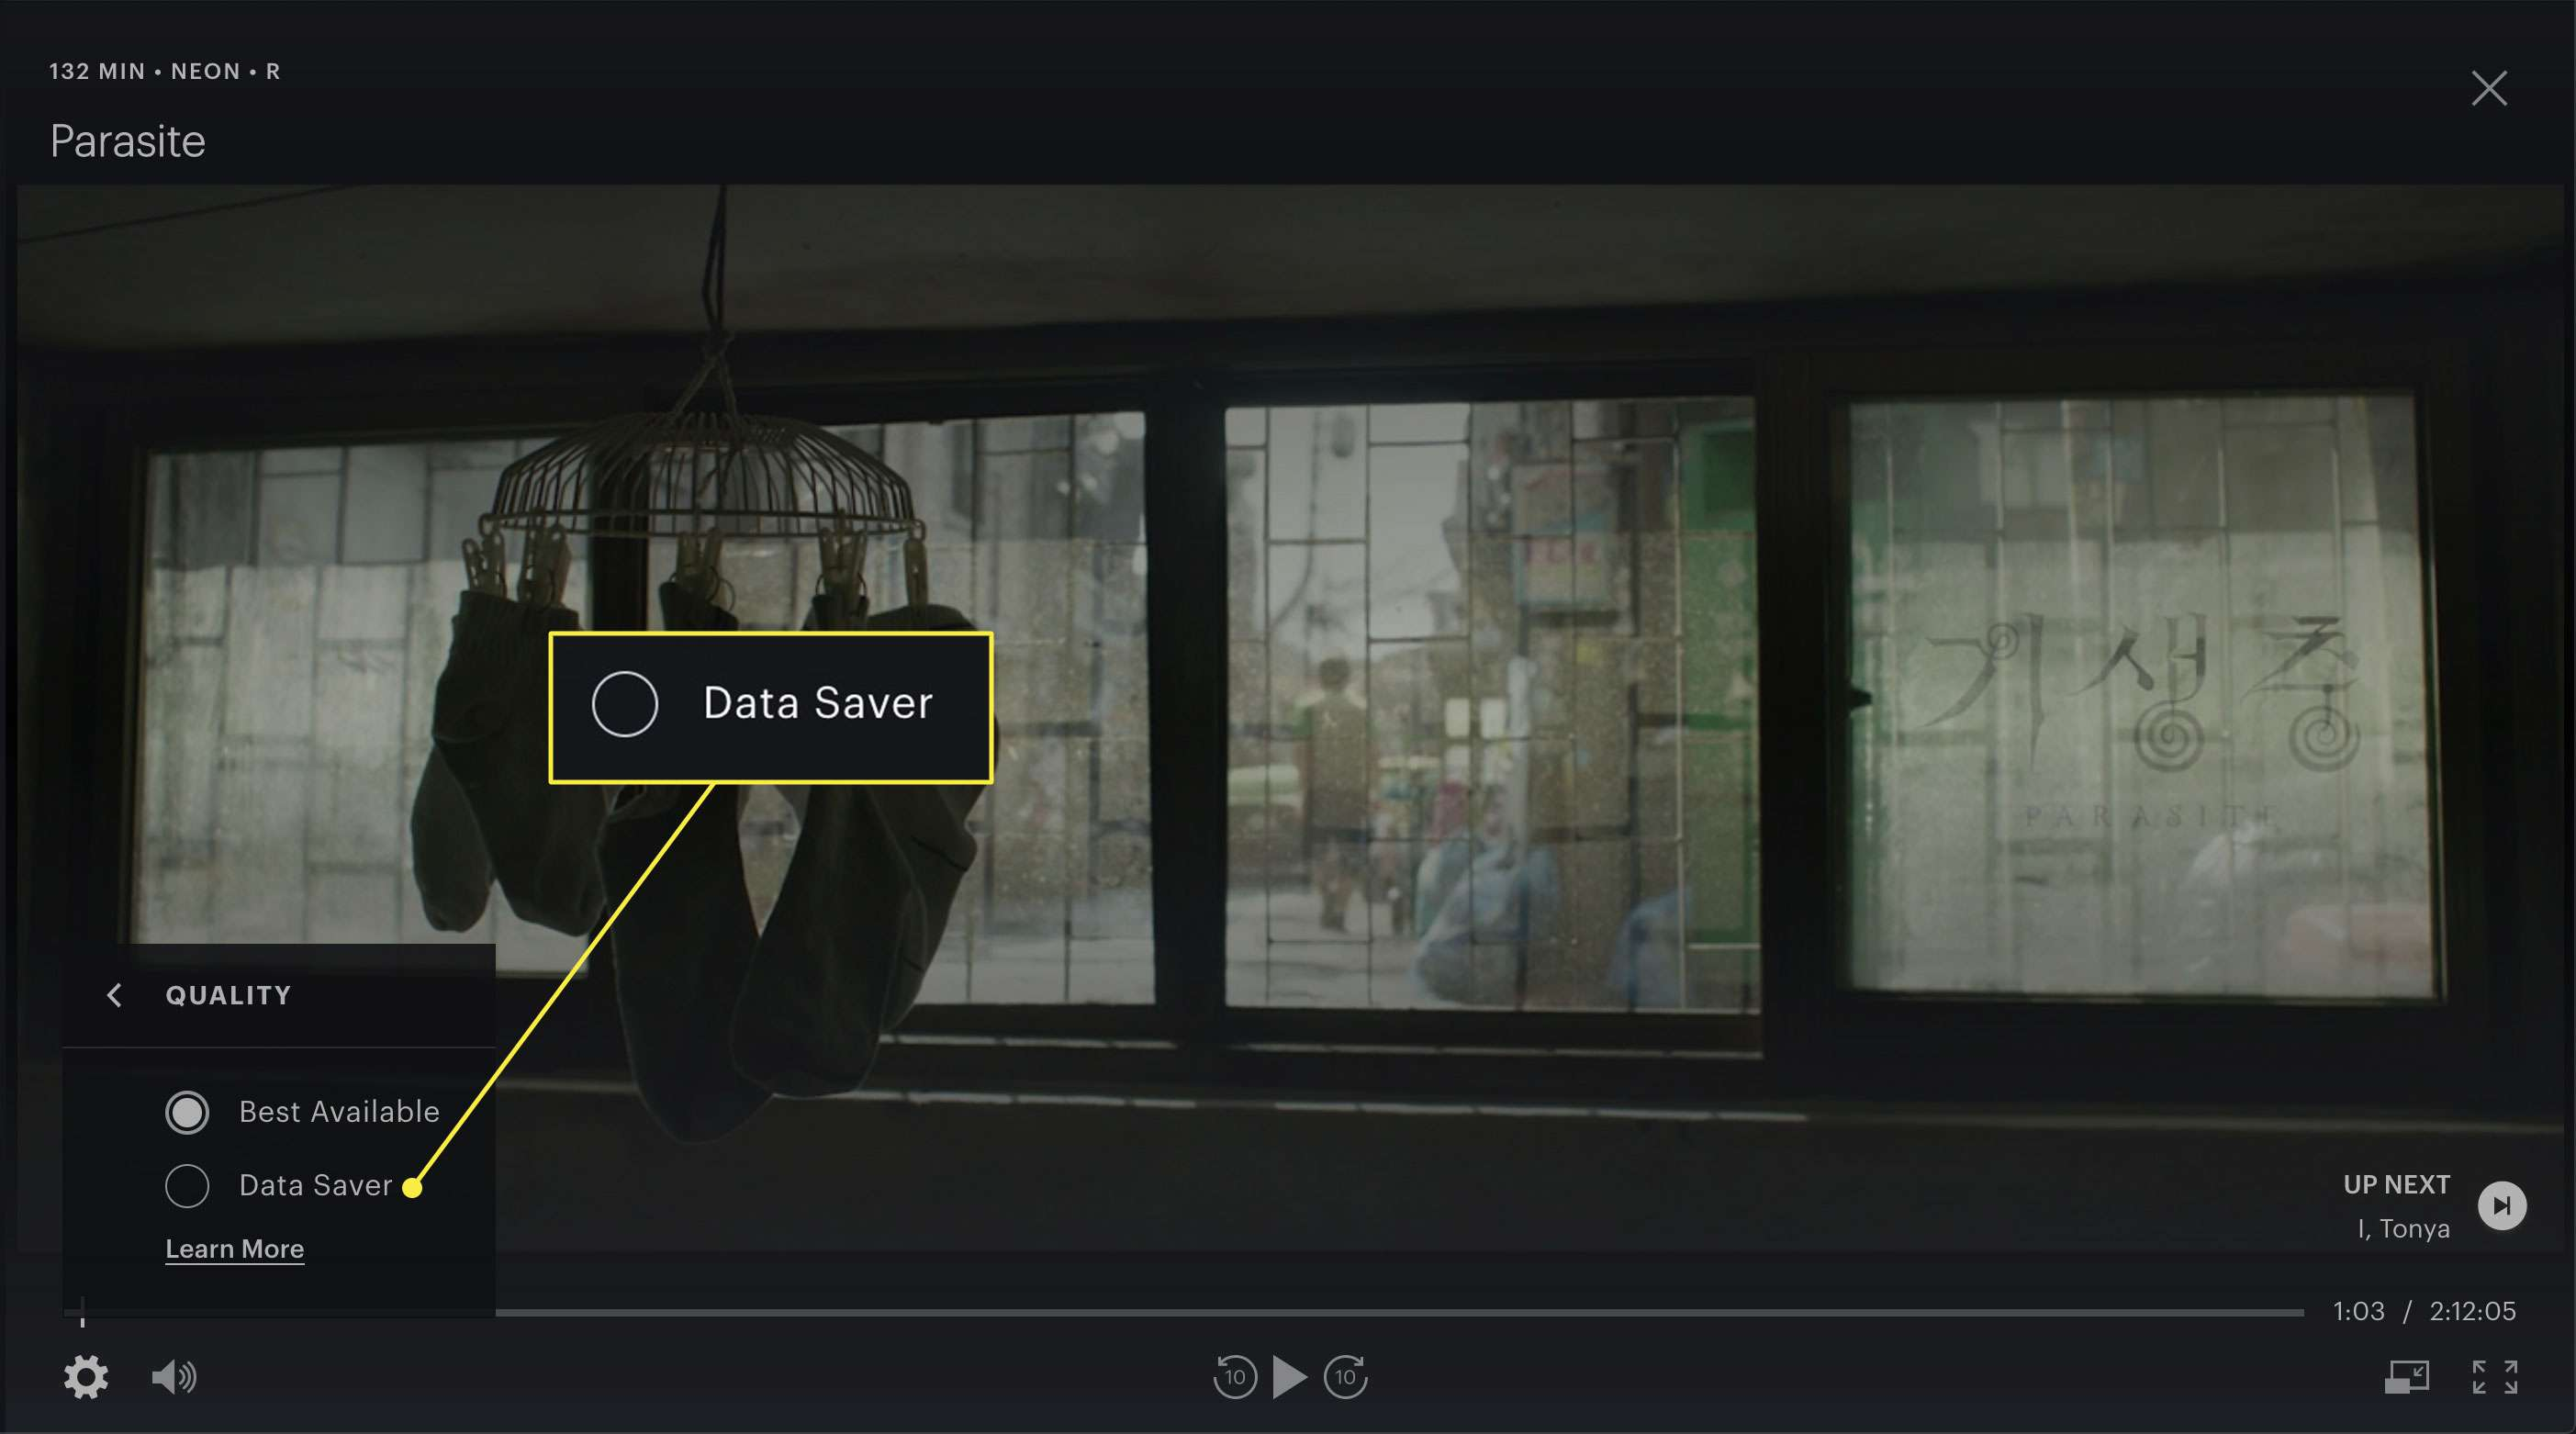 A screenshot of a movie playing on Hulu with the Data Saver quality option highlighted